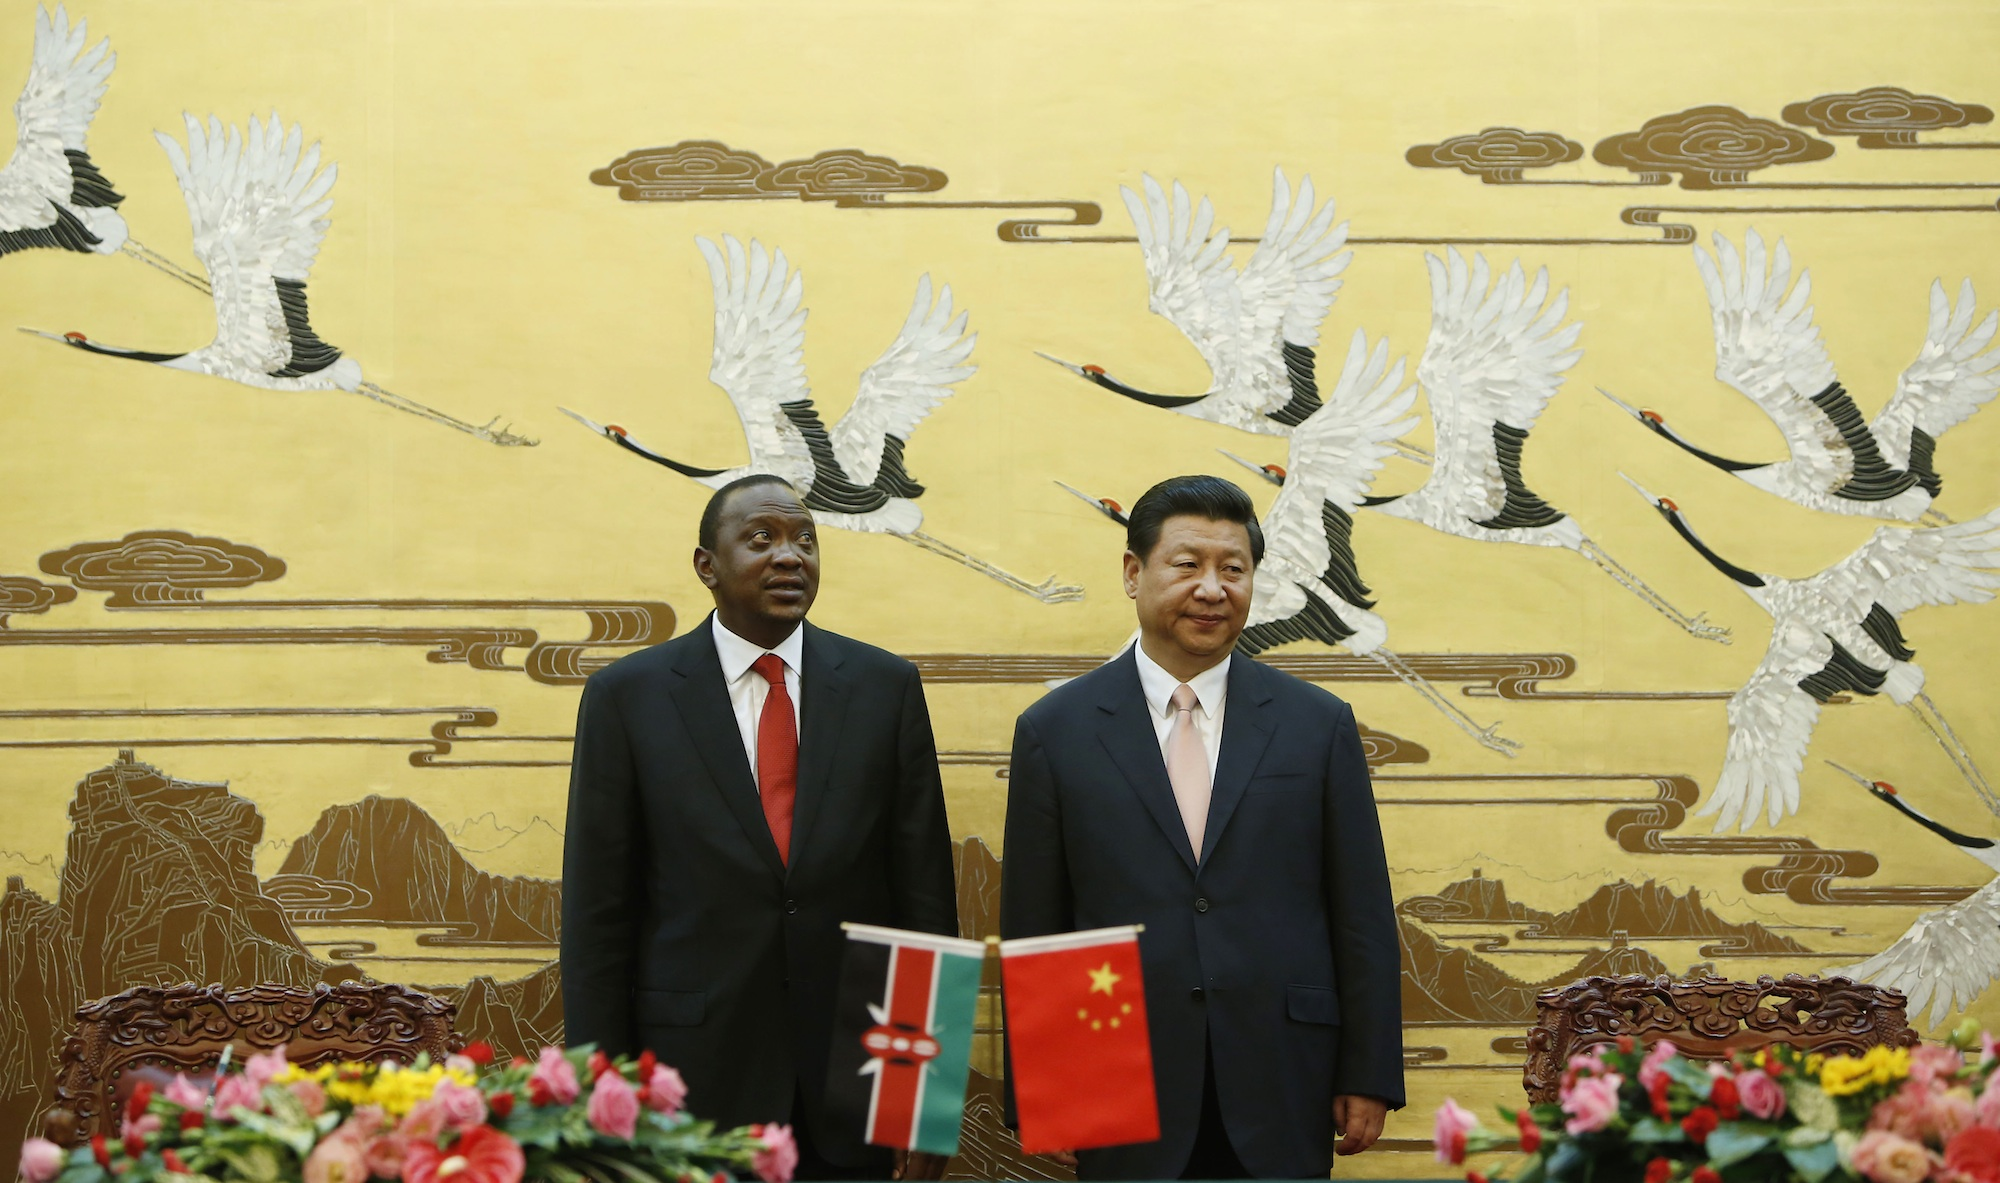 Kenyan President Uhuru Kenyatta (L ) and his Chinese counterpart Xi Jinping stand together during a signing ceremony at the Great Hall of the People in Beijing in 2013.